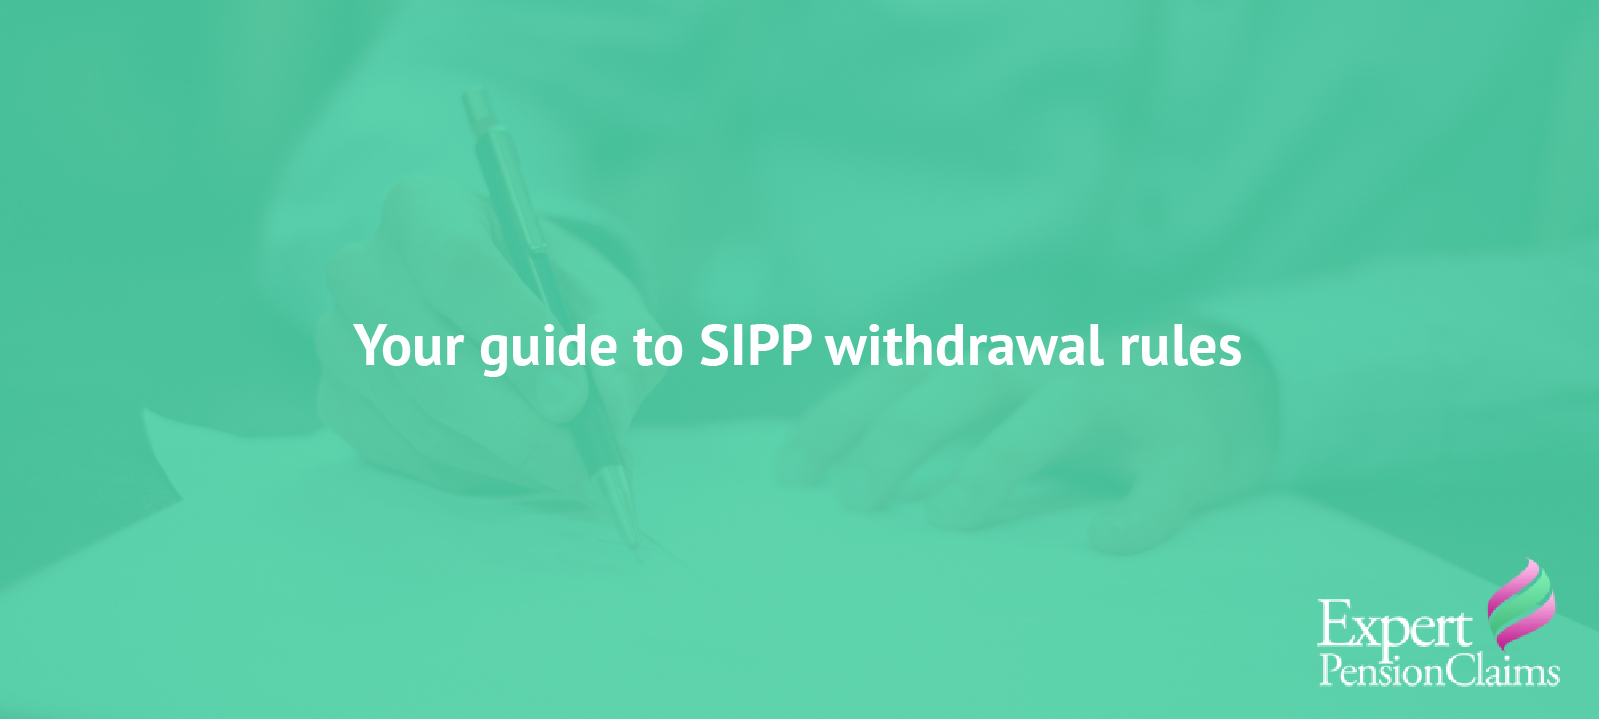 Your guide to SIPP withdrawal rules